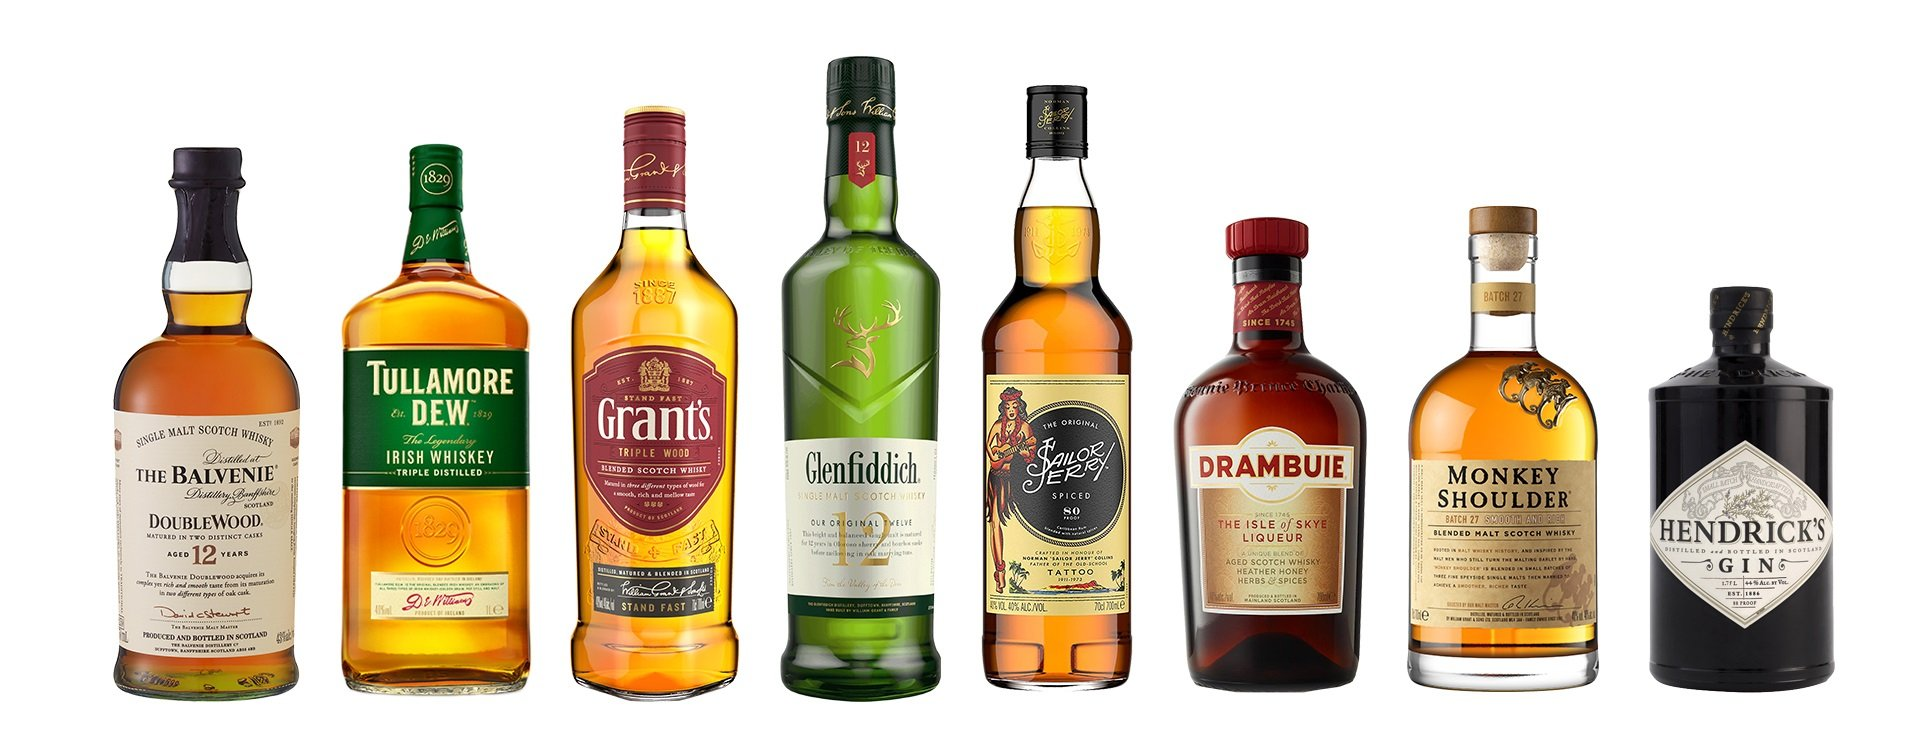 william-grant-scotch-whisky-bottle-line-up.jpg